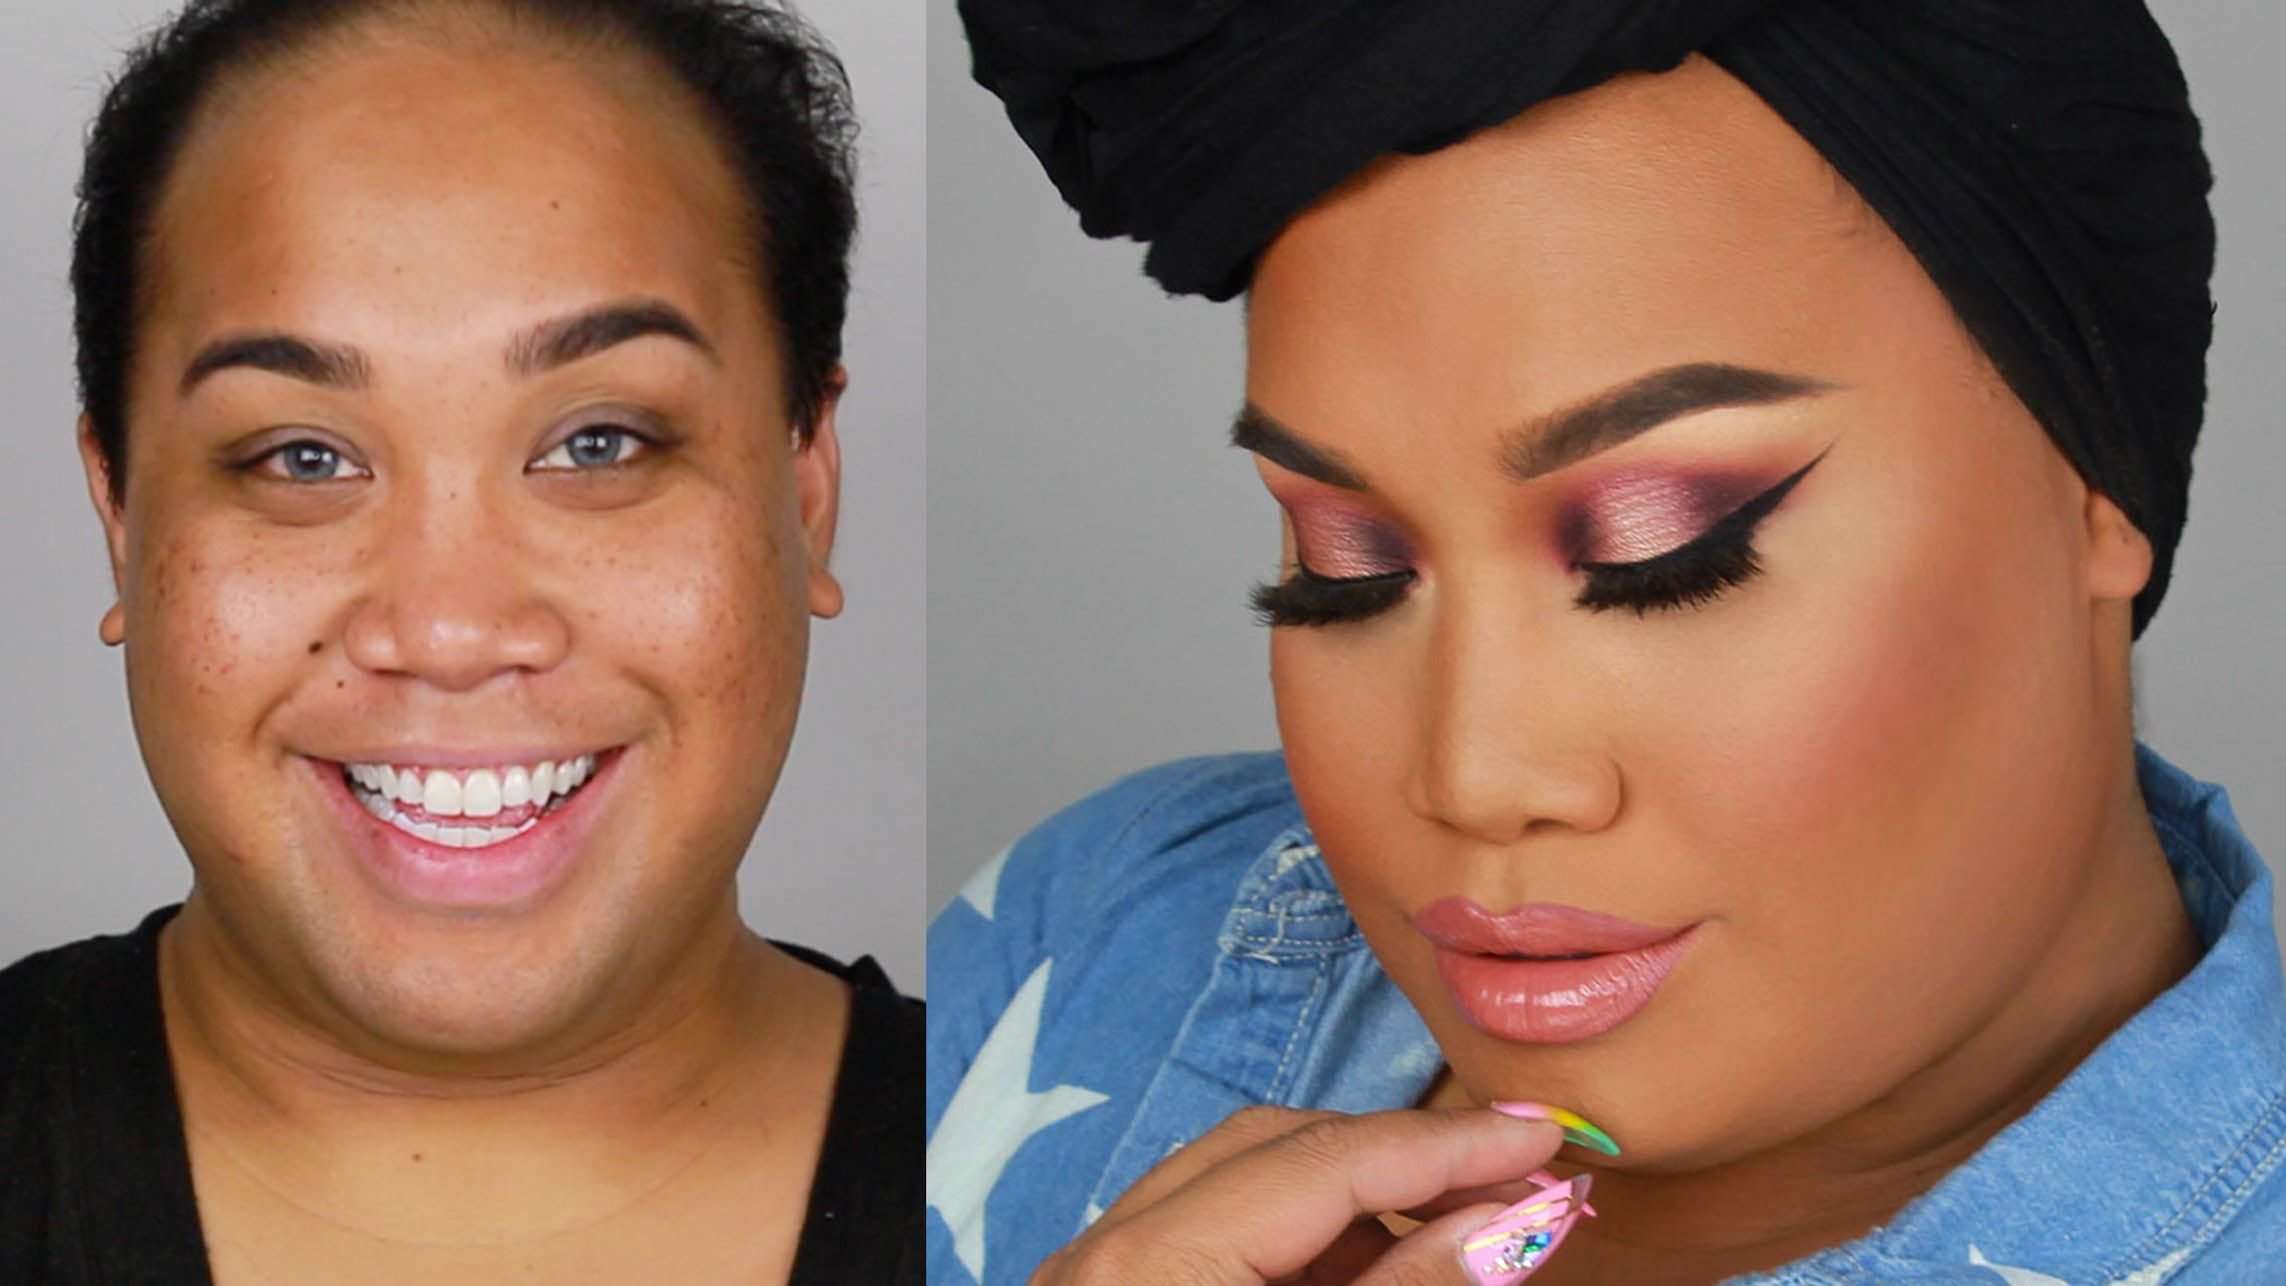 MANNYMUA MAKEUPGEEK PALLETE SMOKEY EYE TUTORIAL | PatrickStarrr